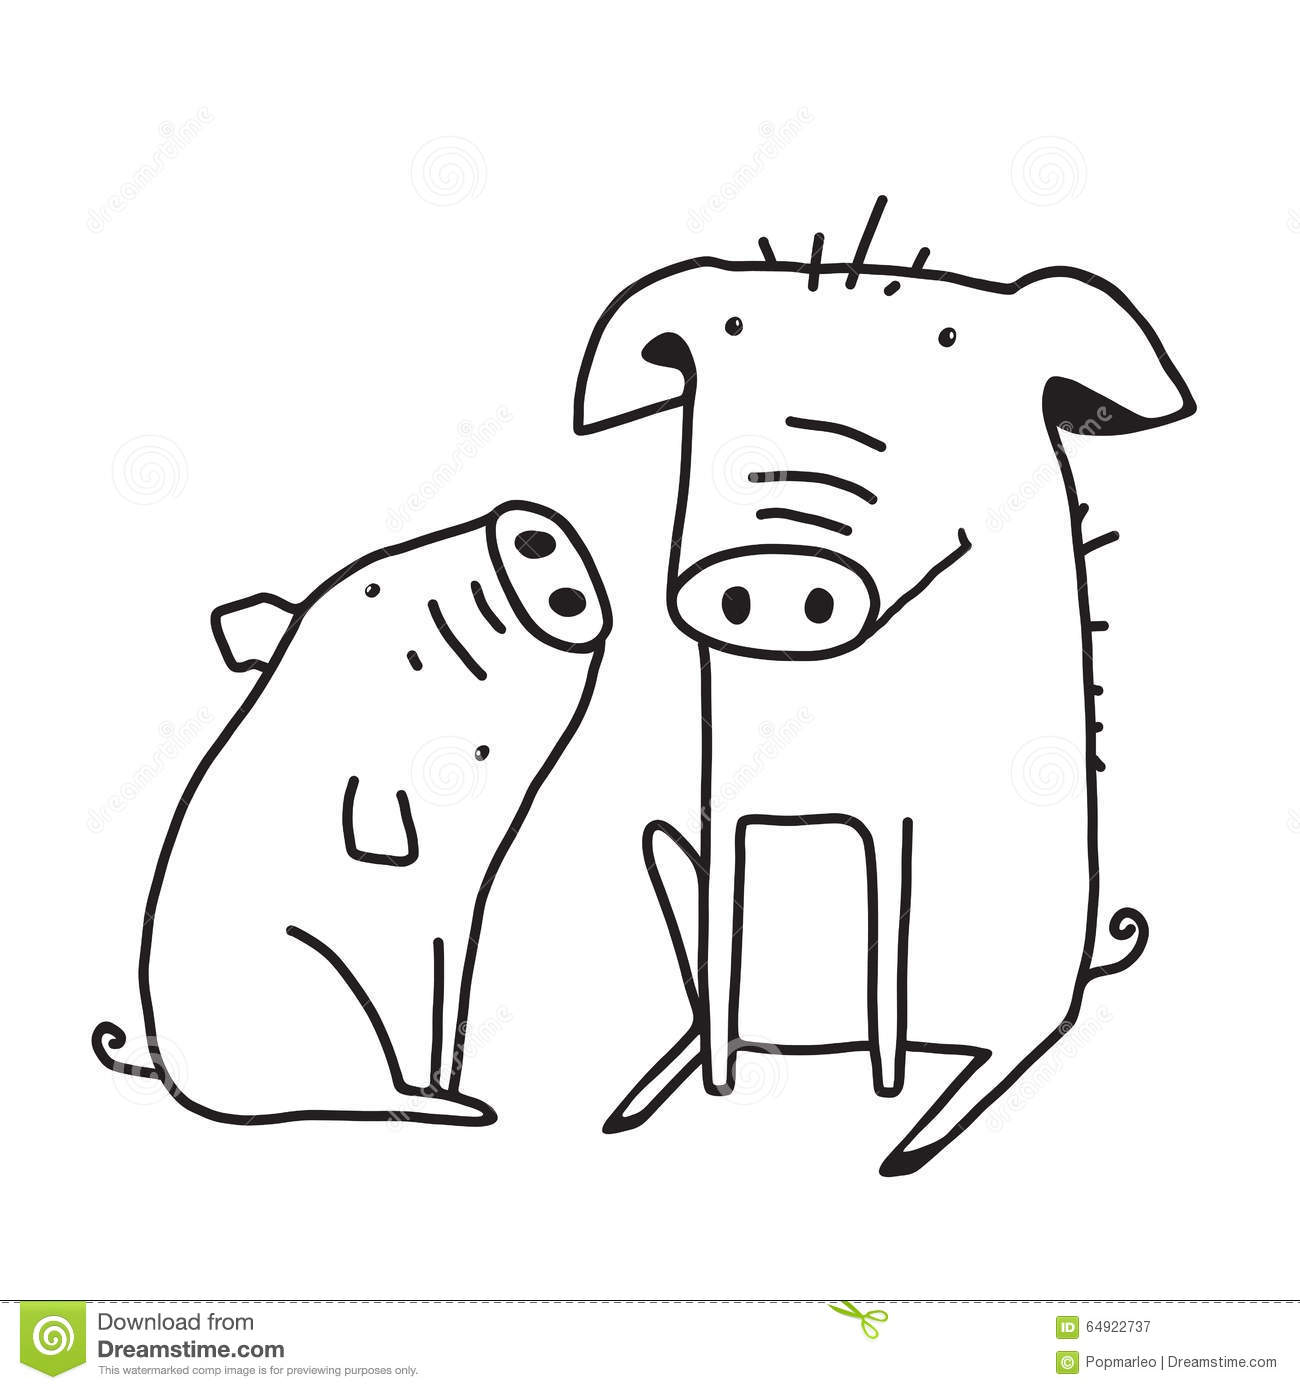 Line Drawings Of Farm Animals : Cute pigs outline funny illustration for kids mom stock